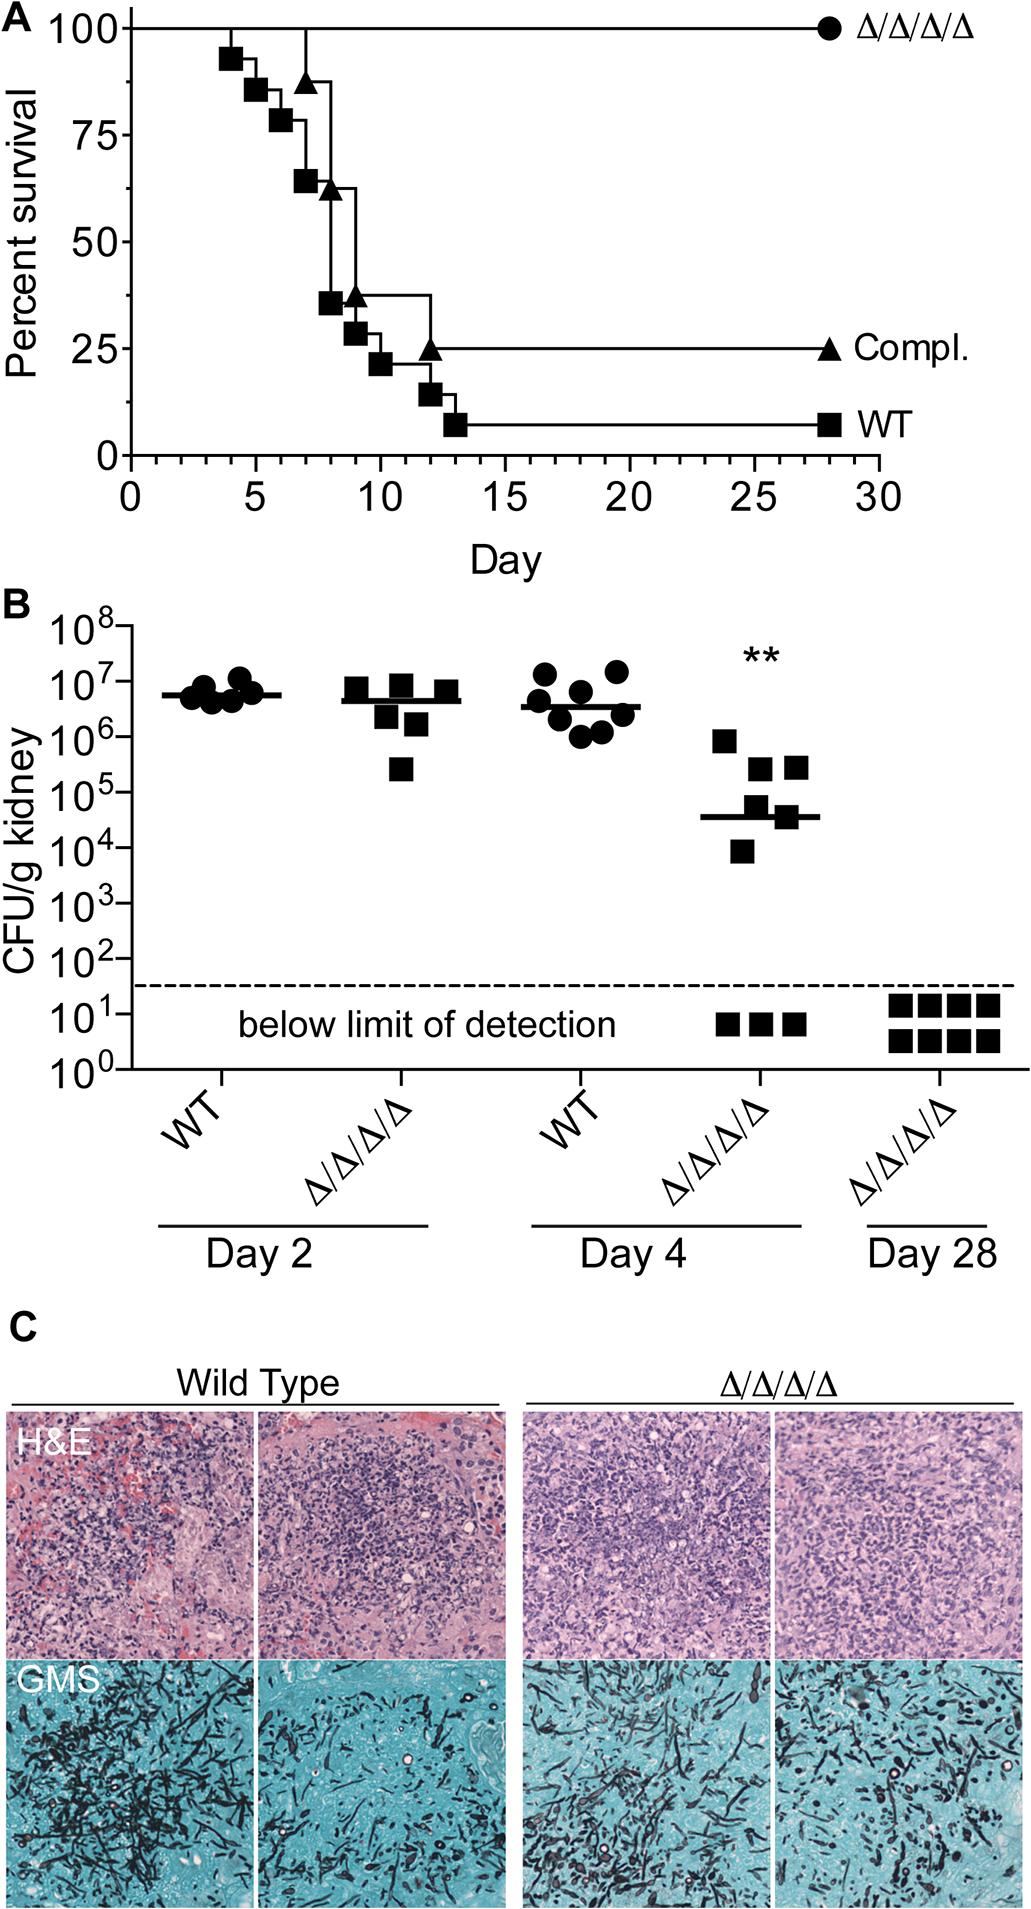 The Δ/Δ/Δ/Δ mutant is avirulent in a mouse model of systemic candidiasis.